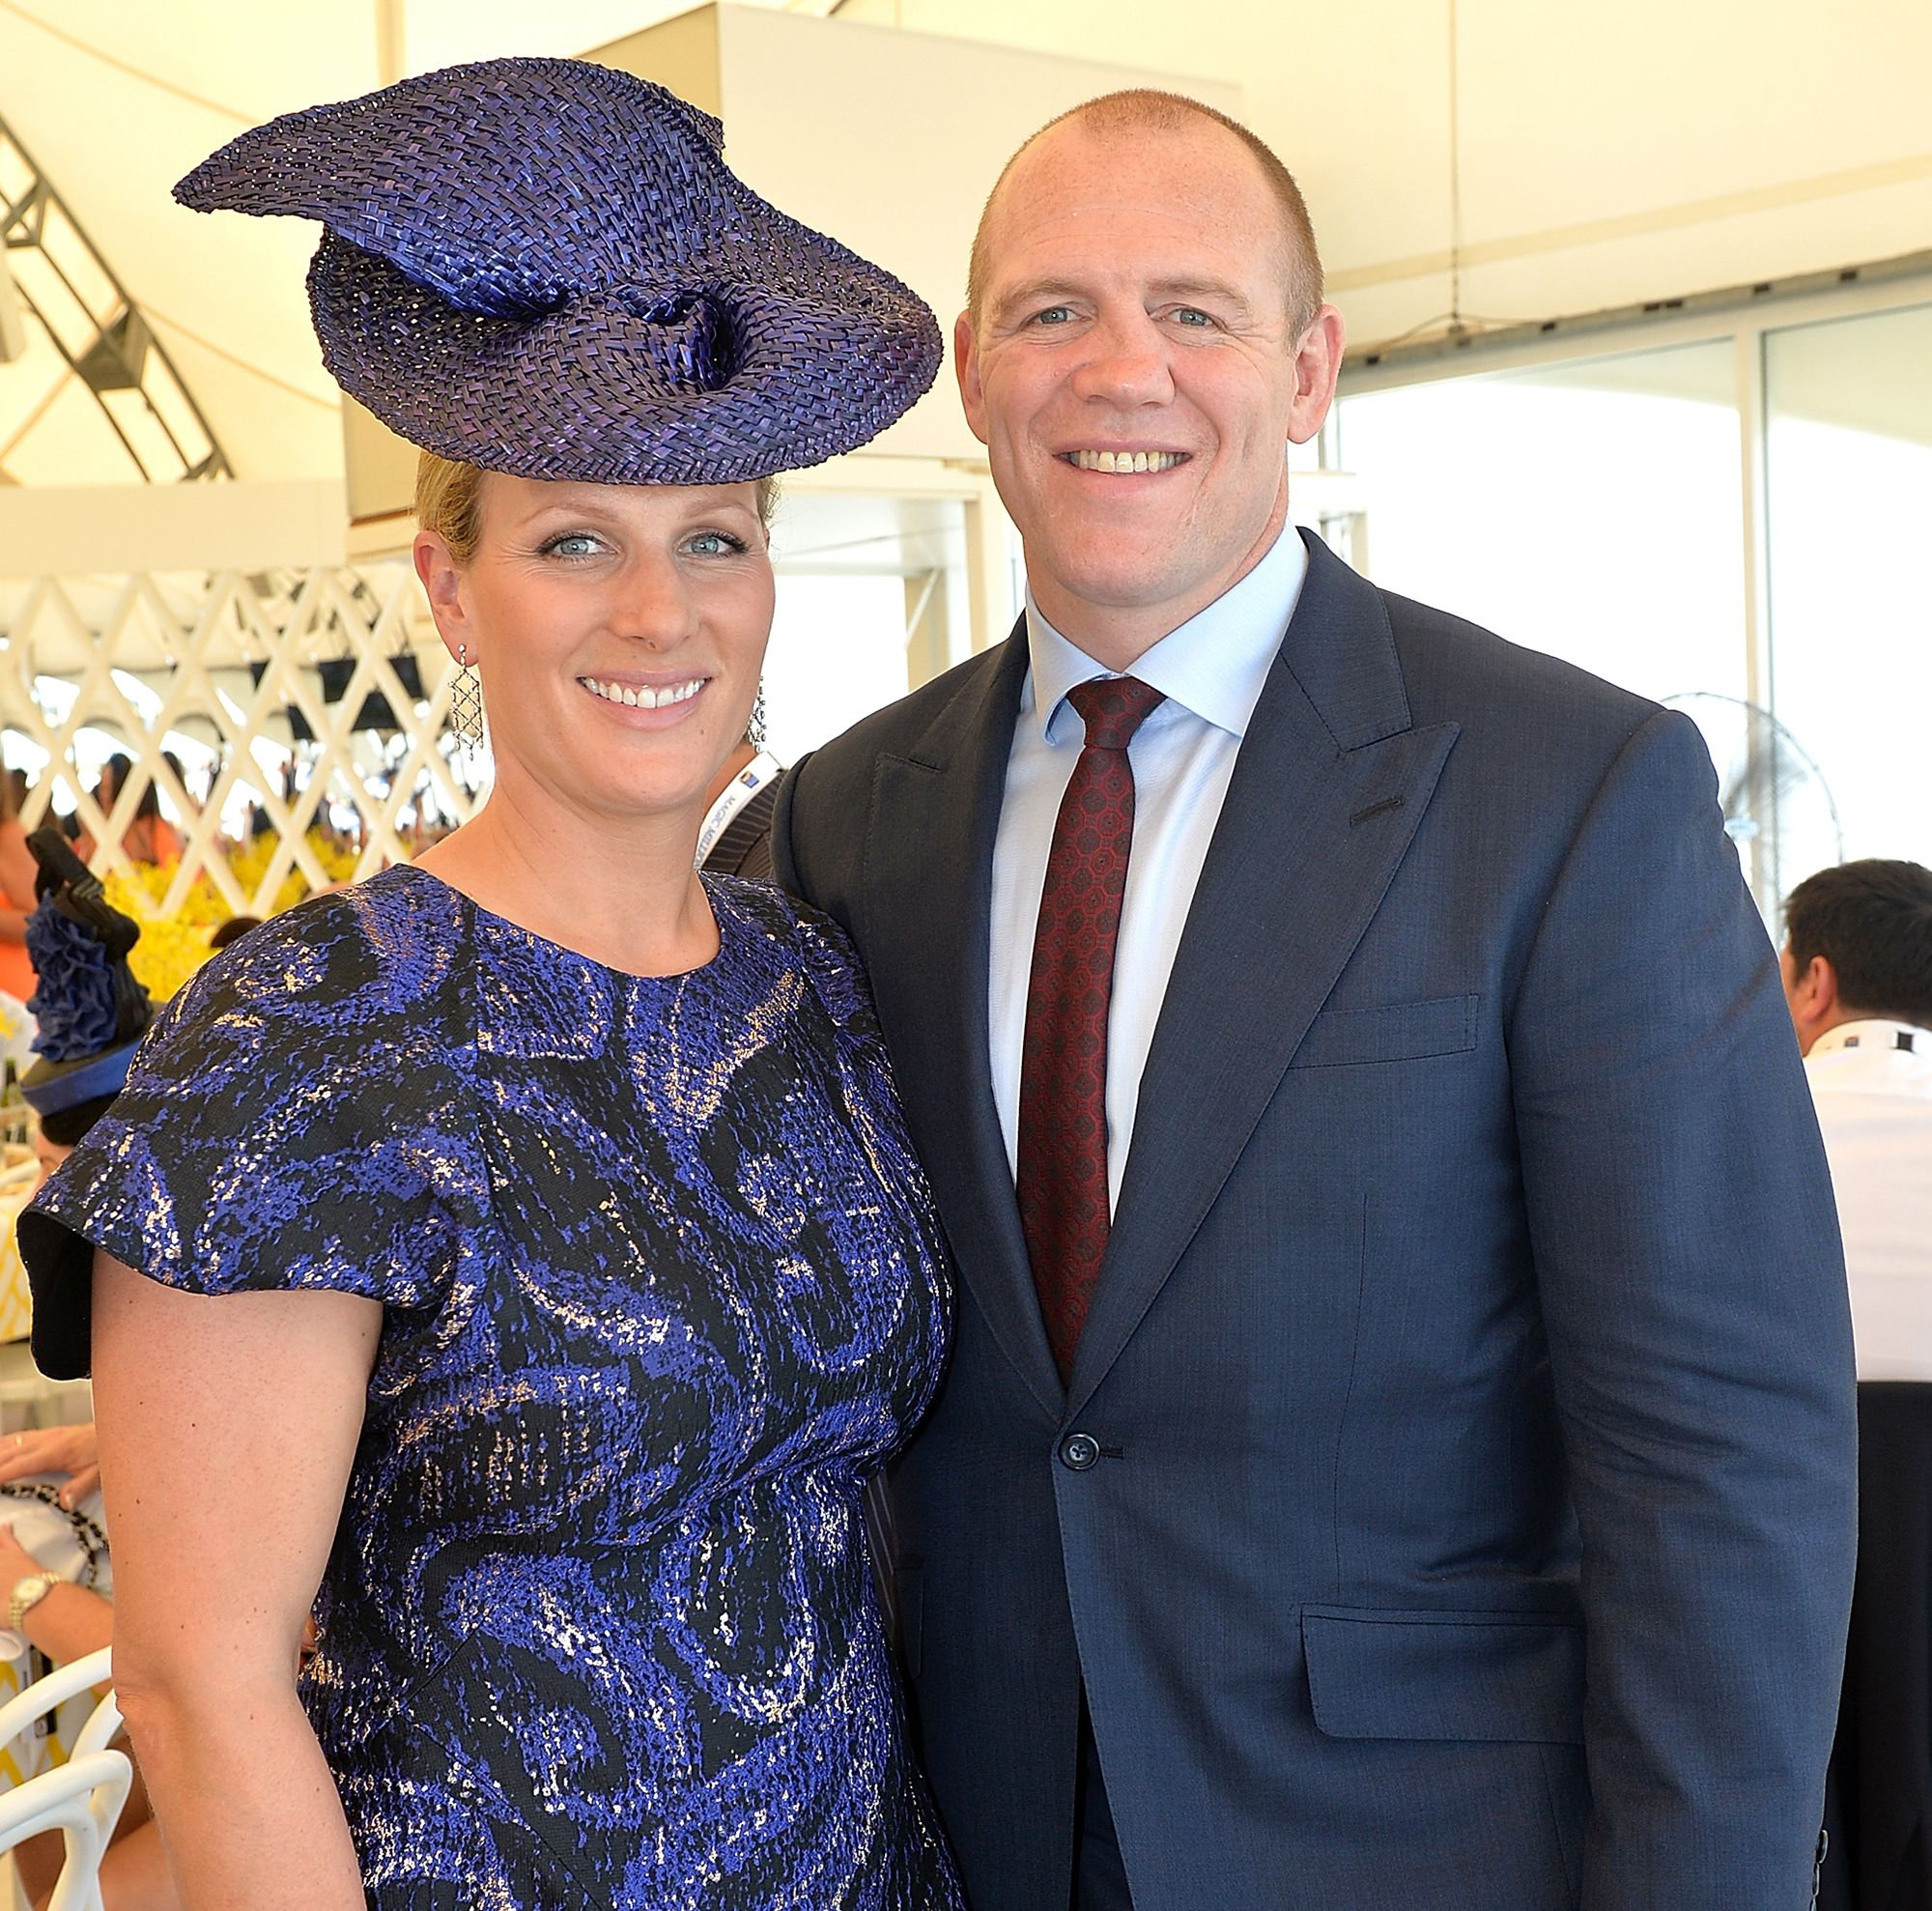 It looks like Mike Tindall just became the latest royal to open an Instagram account